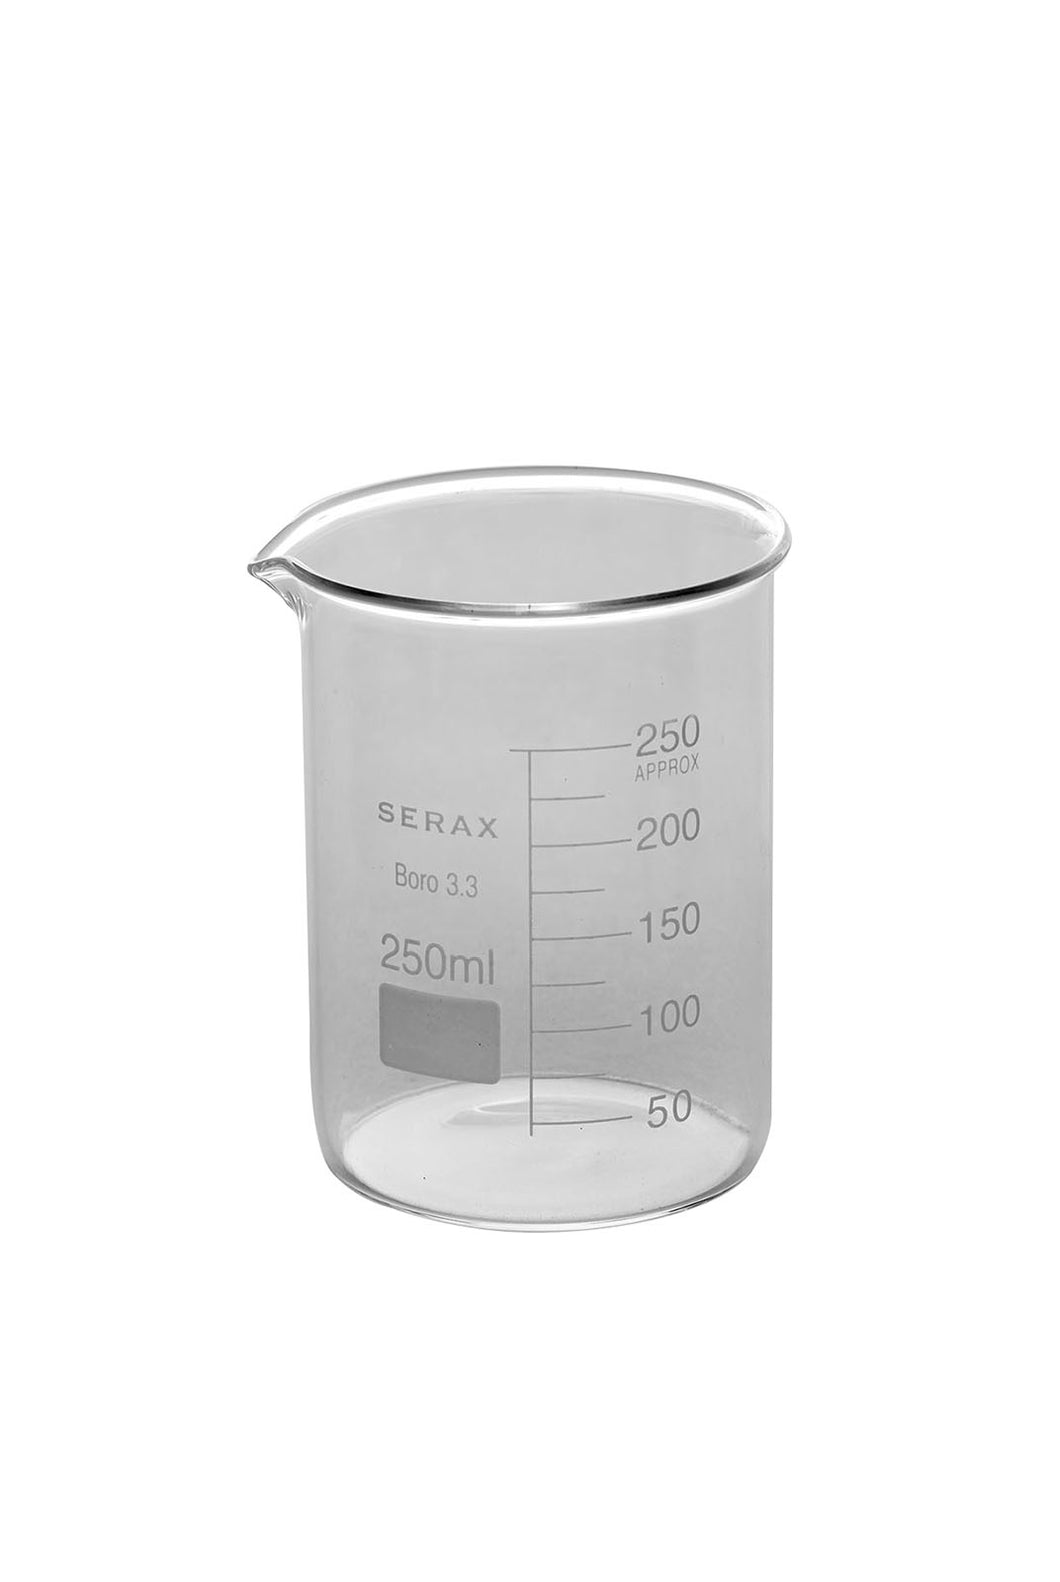 Serax - Glassware Collection - Glass Measuring Cup - Beaker - Small - 250ml